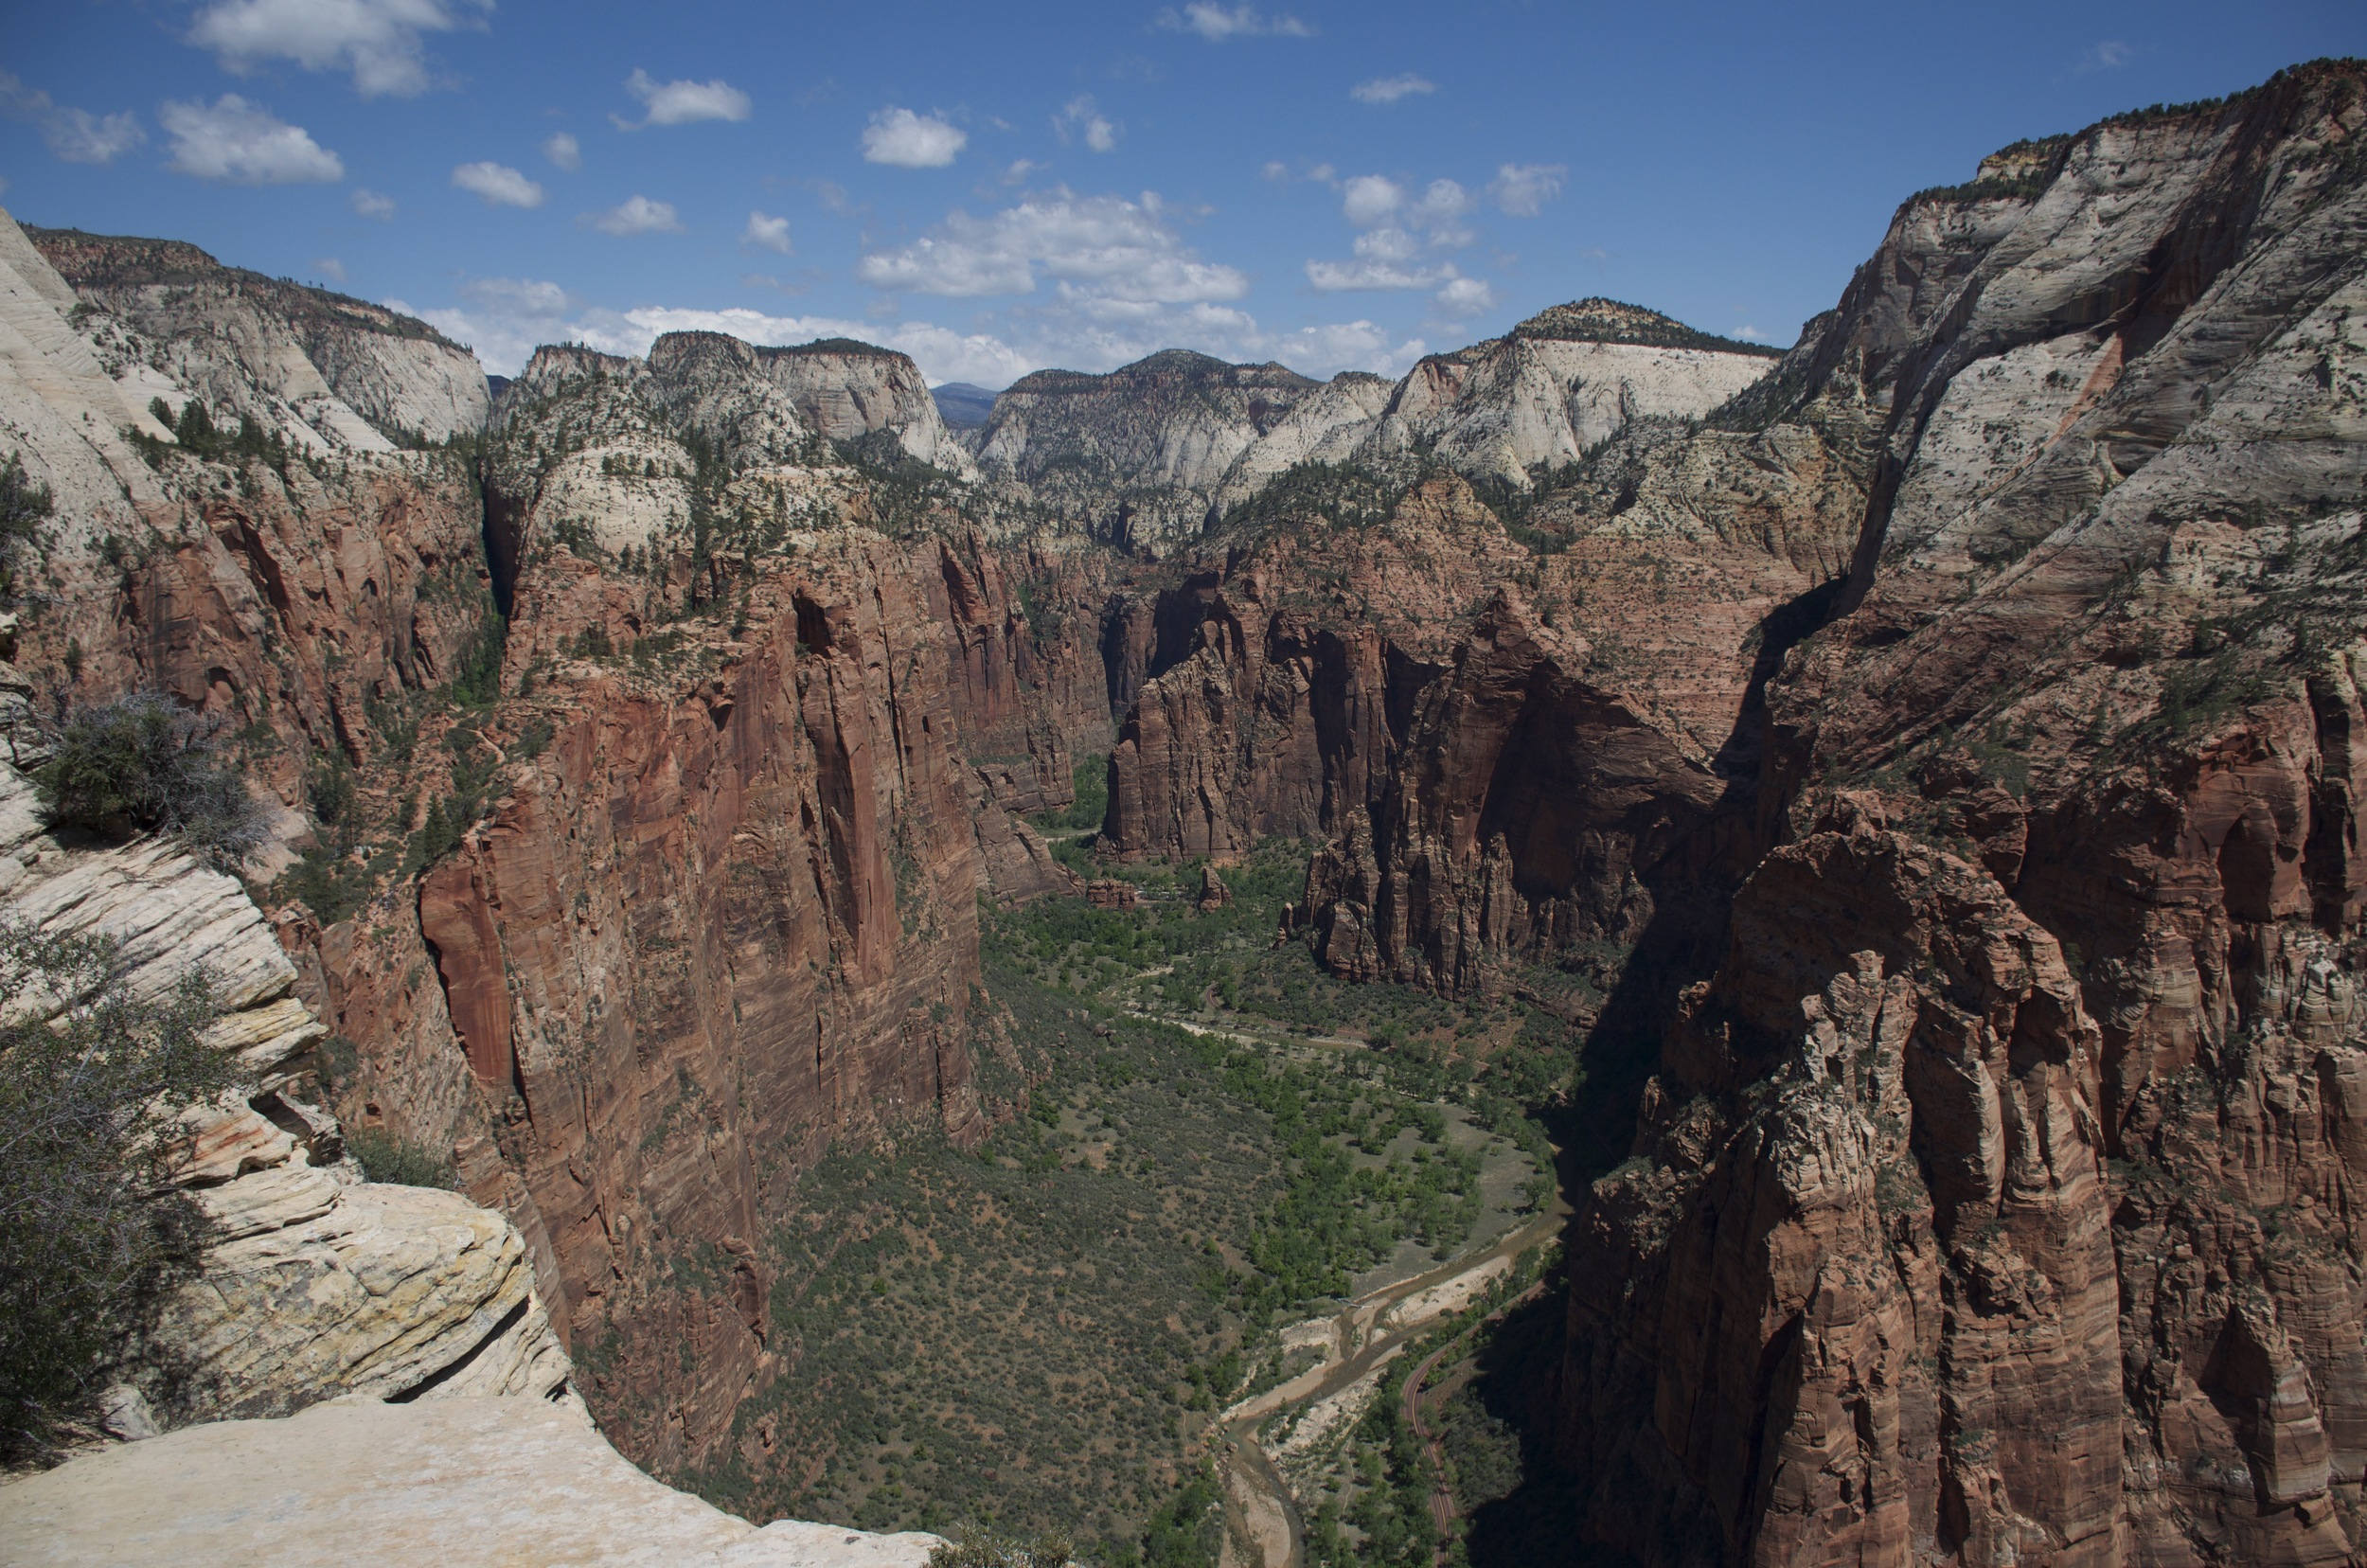 angels landing zion national park utah thisworldexists this world exists